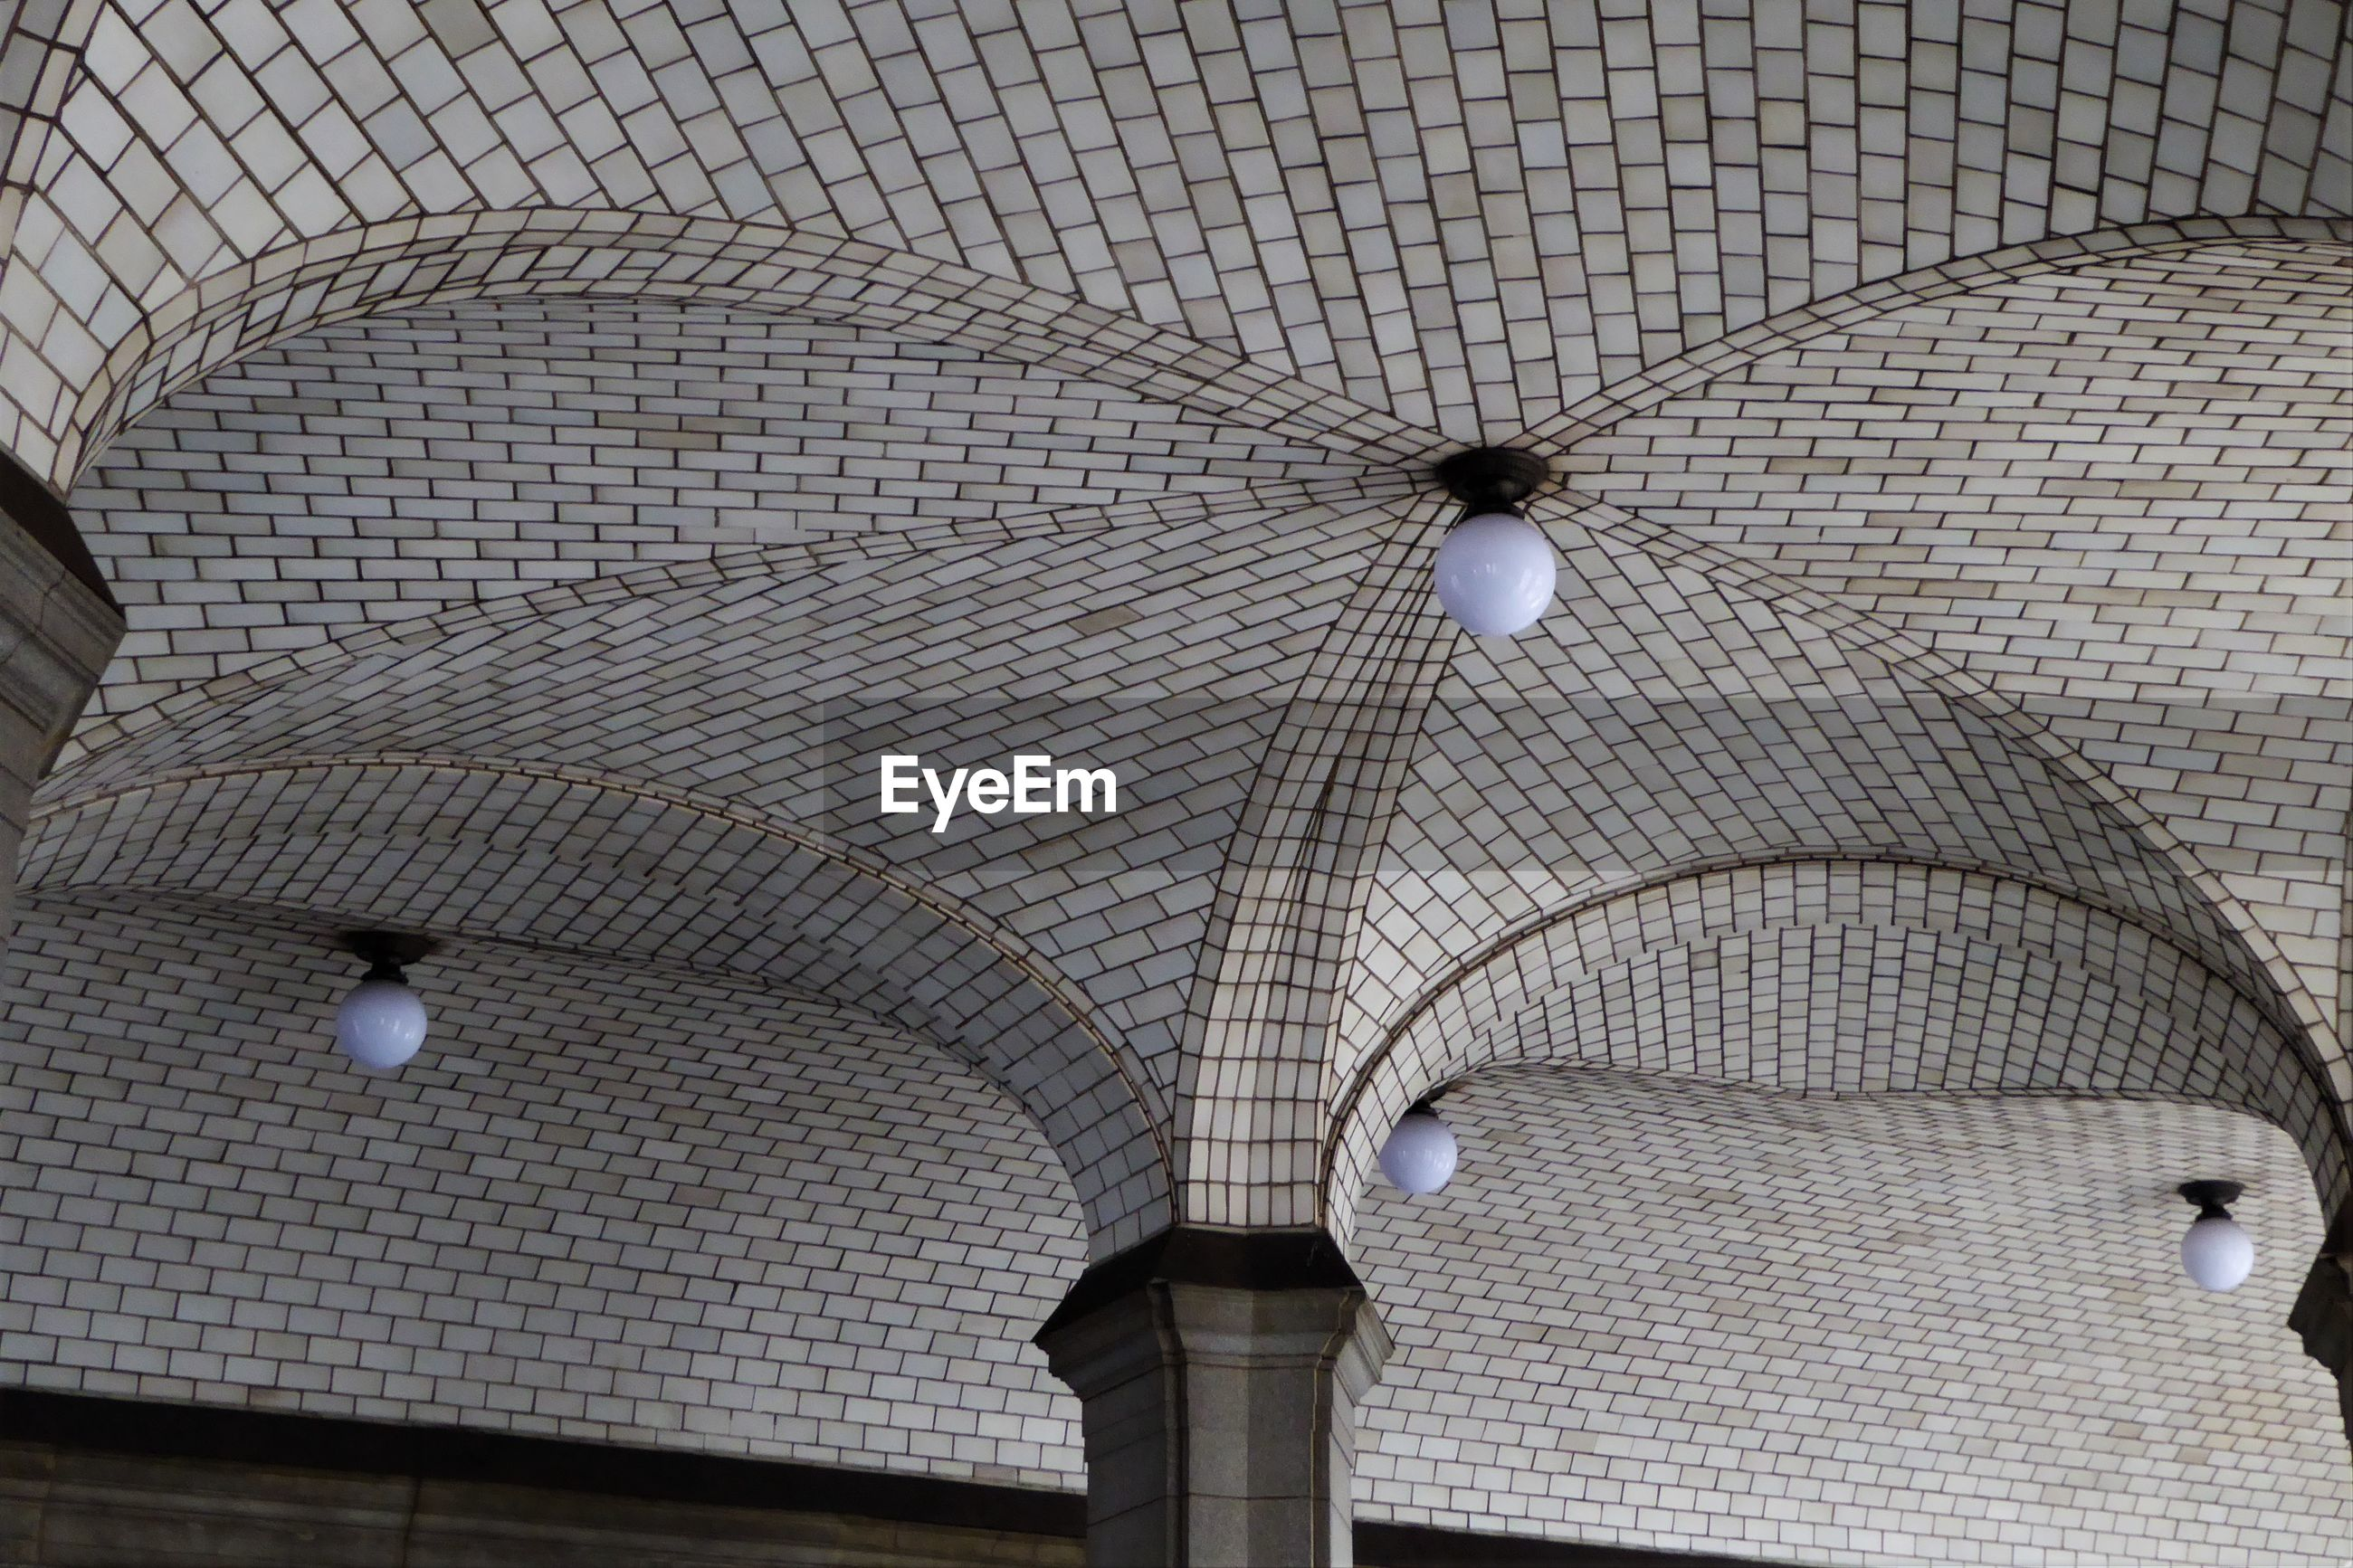 Low angle view of patterned ceiling in building